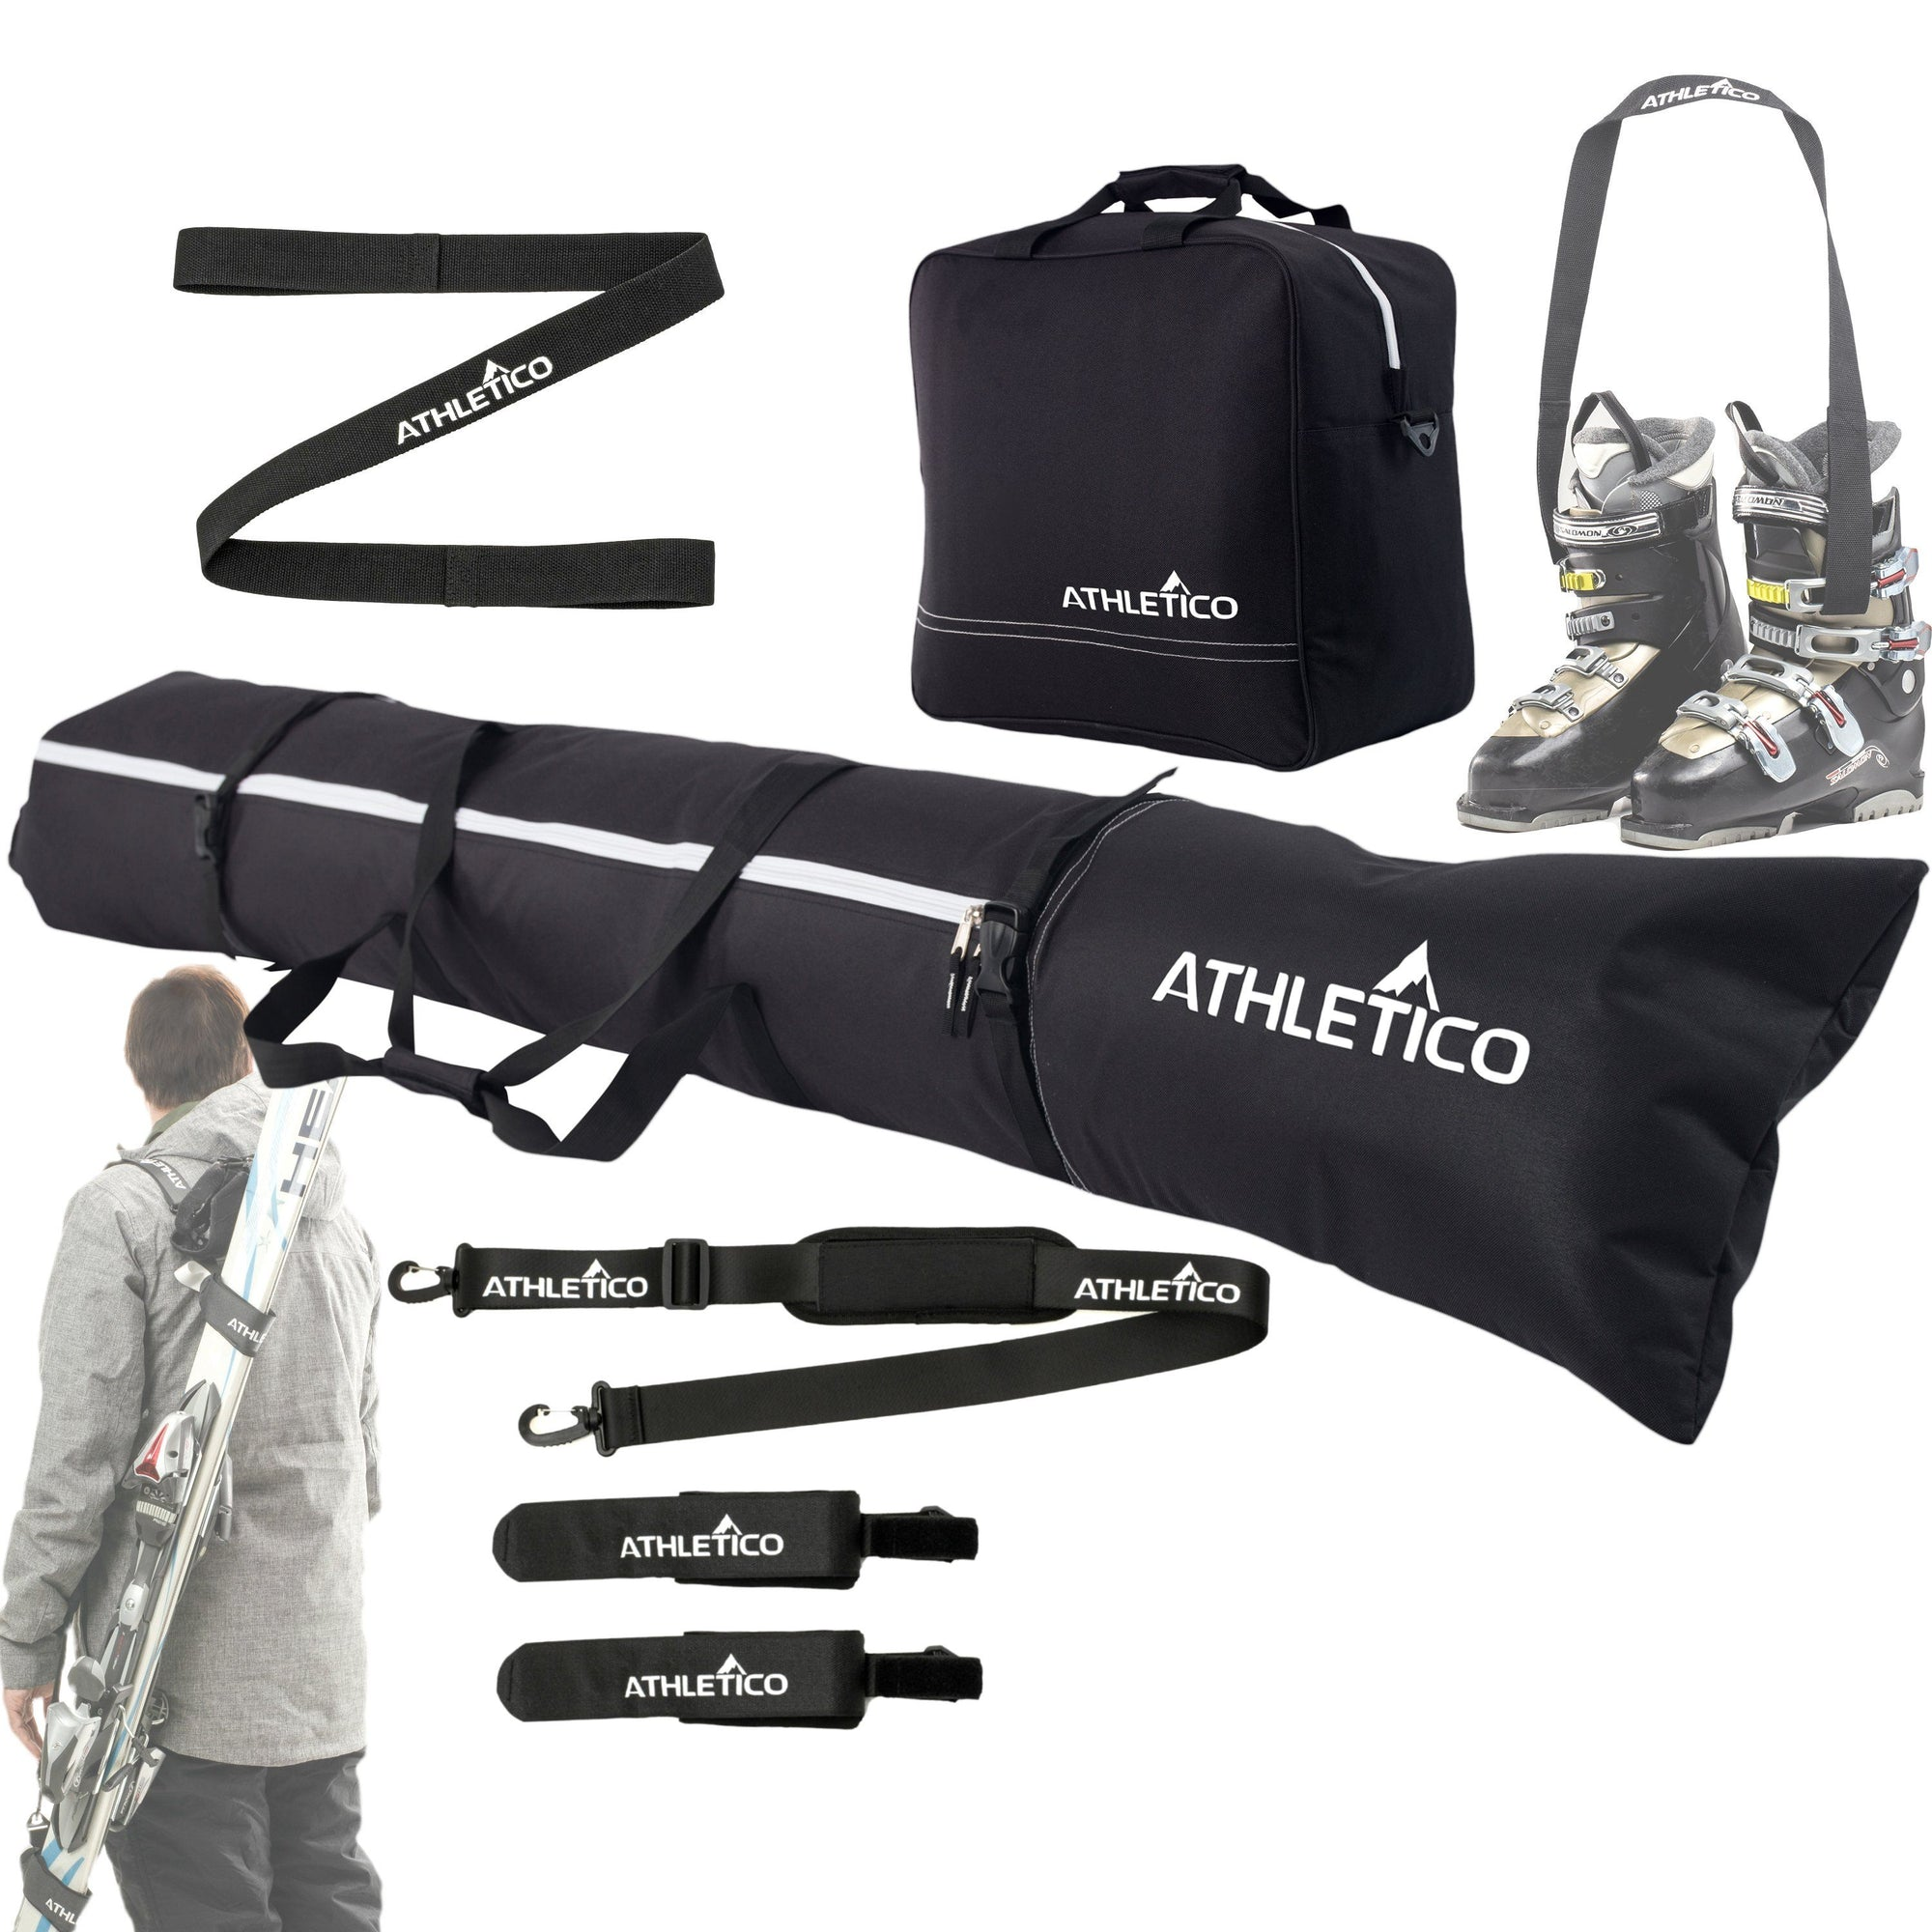 Athletico Four Piece Ski and Boot Bag Combo - Athletico